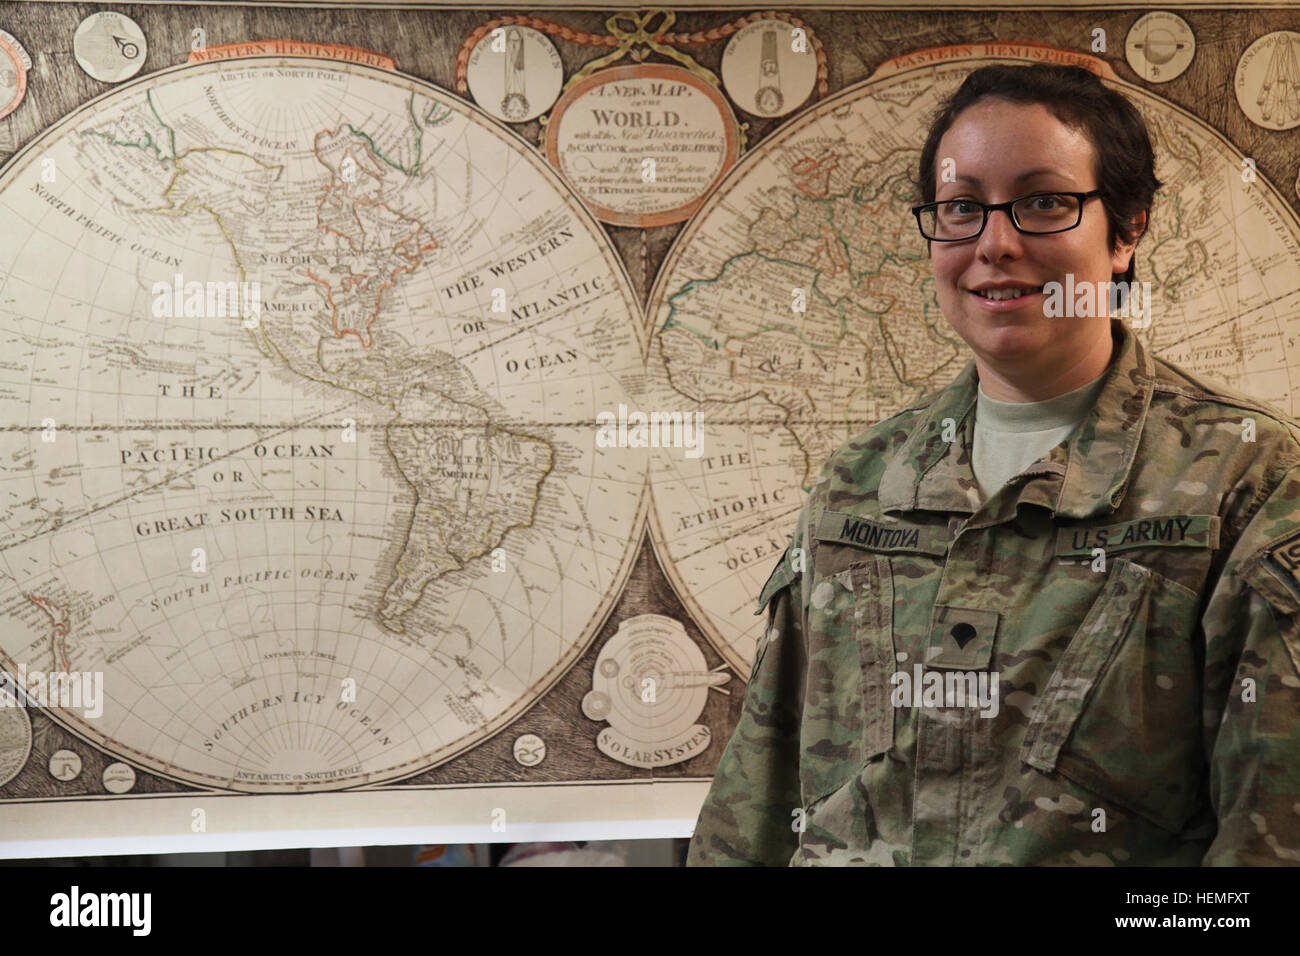 U.S. Army Spc. Carmella D. Montoya, a geospatial engineer assigned to Headquarters and Headquarters Company, 4th - Stock Image